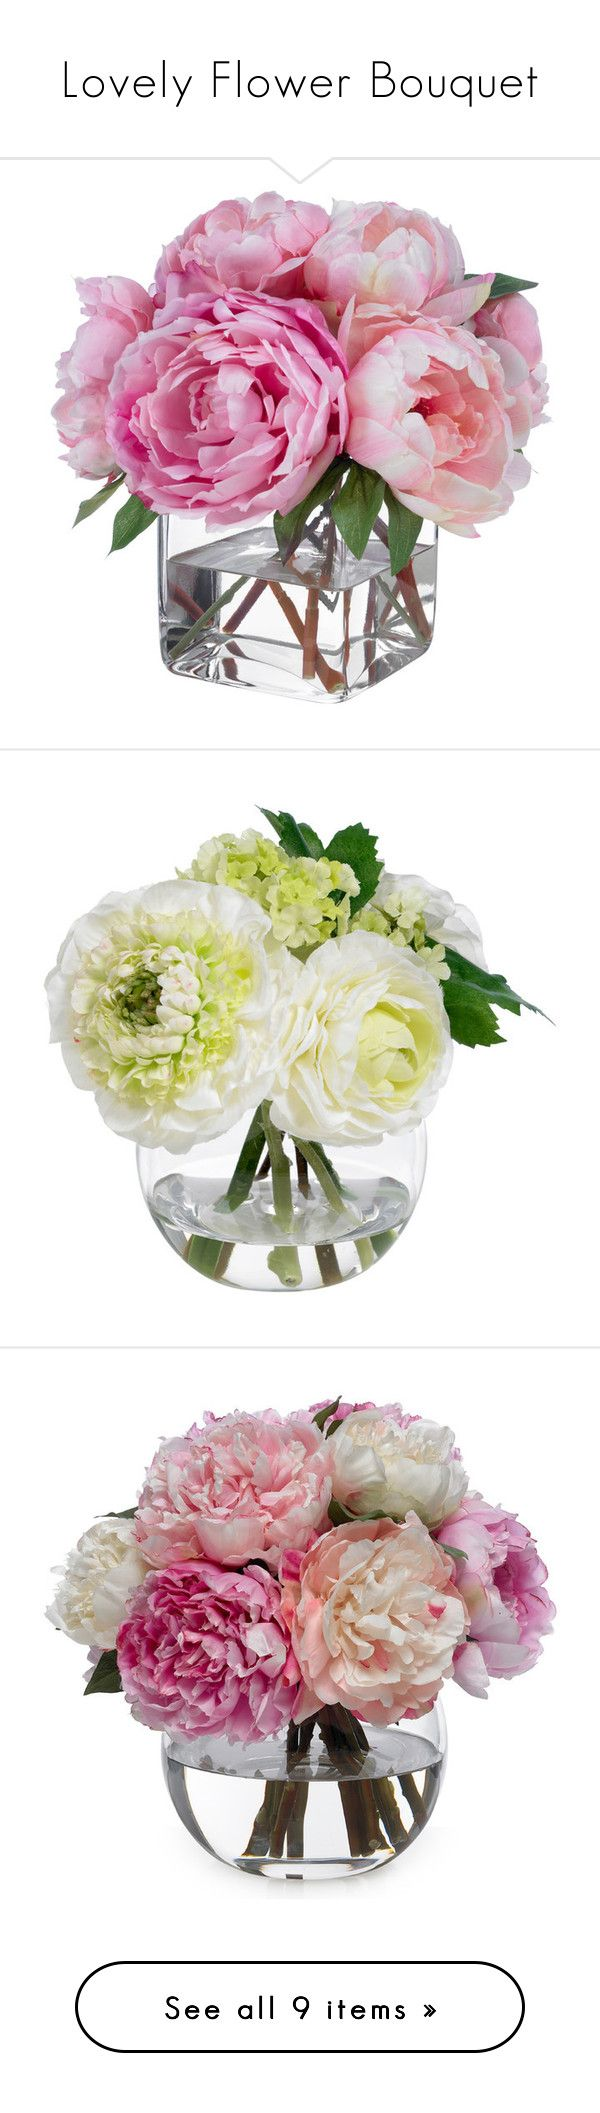 Diy centerpieces faux flowers faux flowers silk flowers and lovely flower bouquet by anetacerna liked on polyvore featuring home home decor floral decor silk peony bouquet fake peony arrangement silk peony dhlflorist Image collections